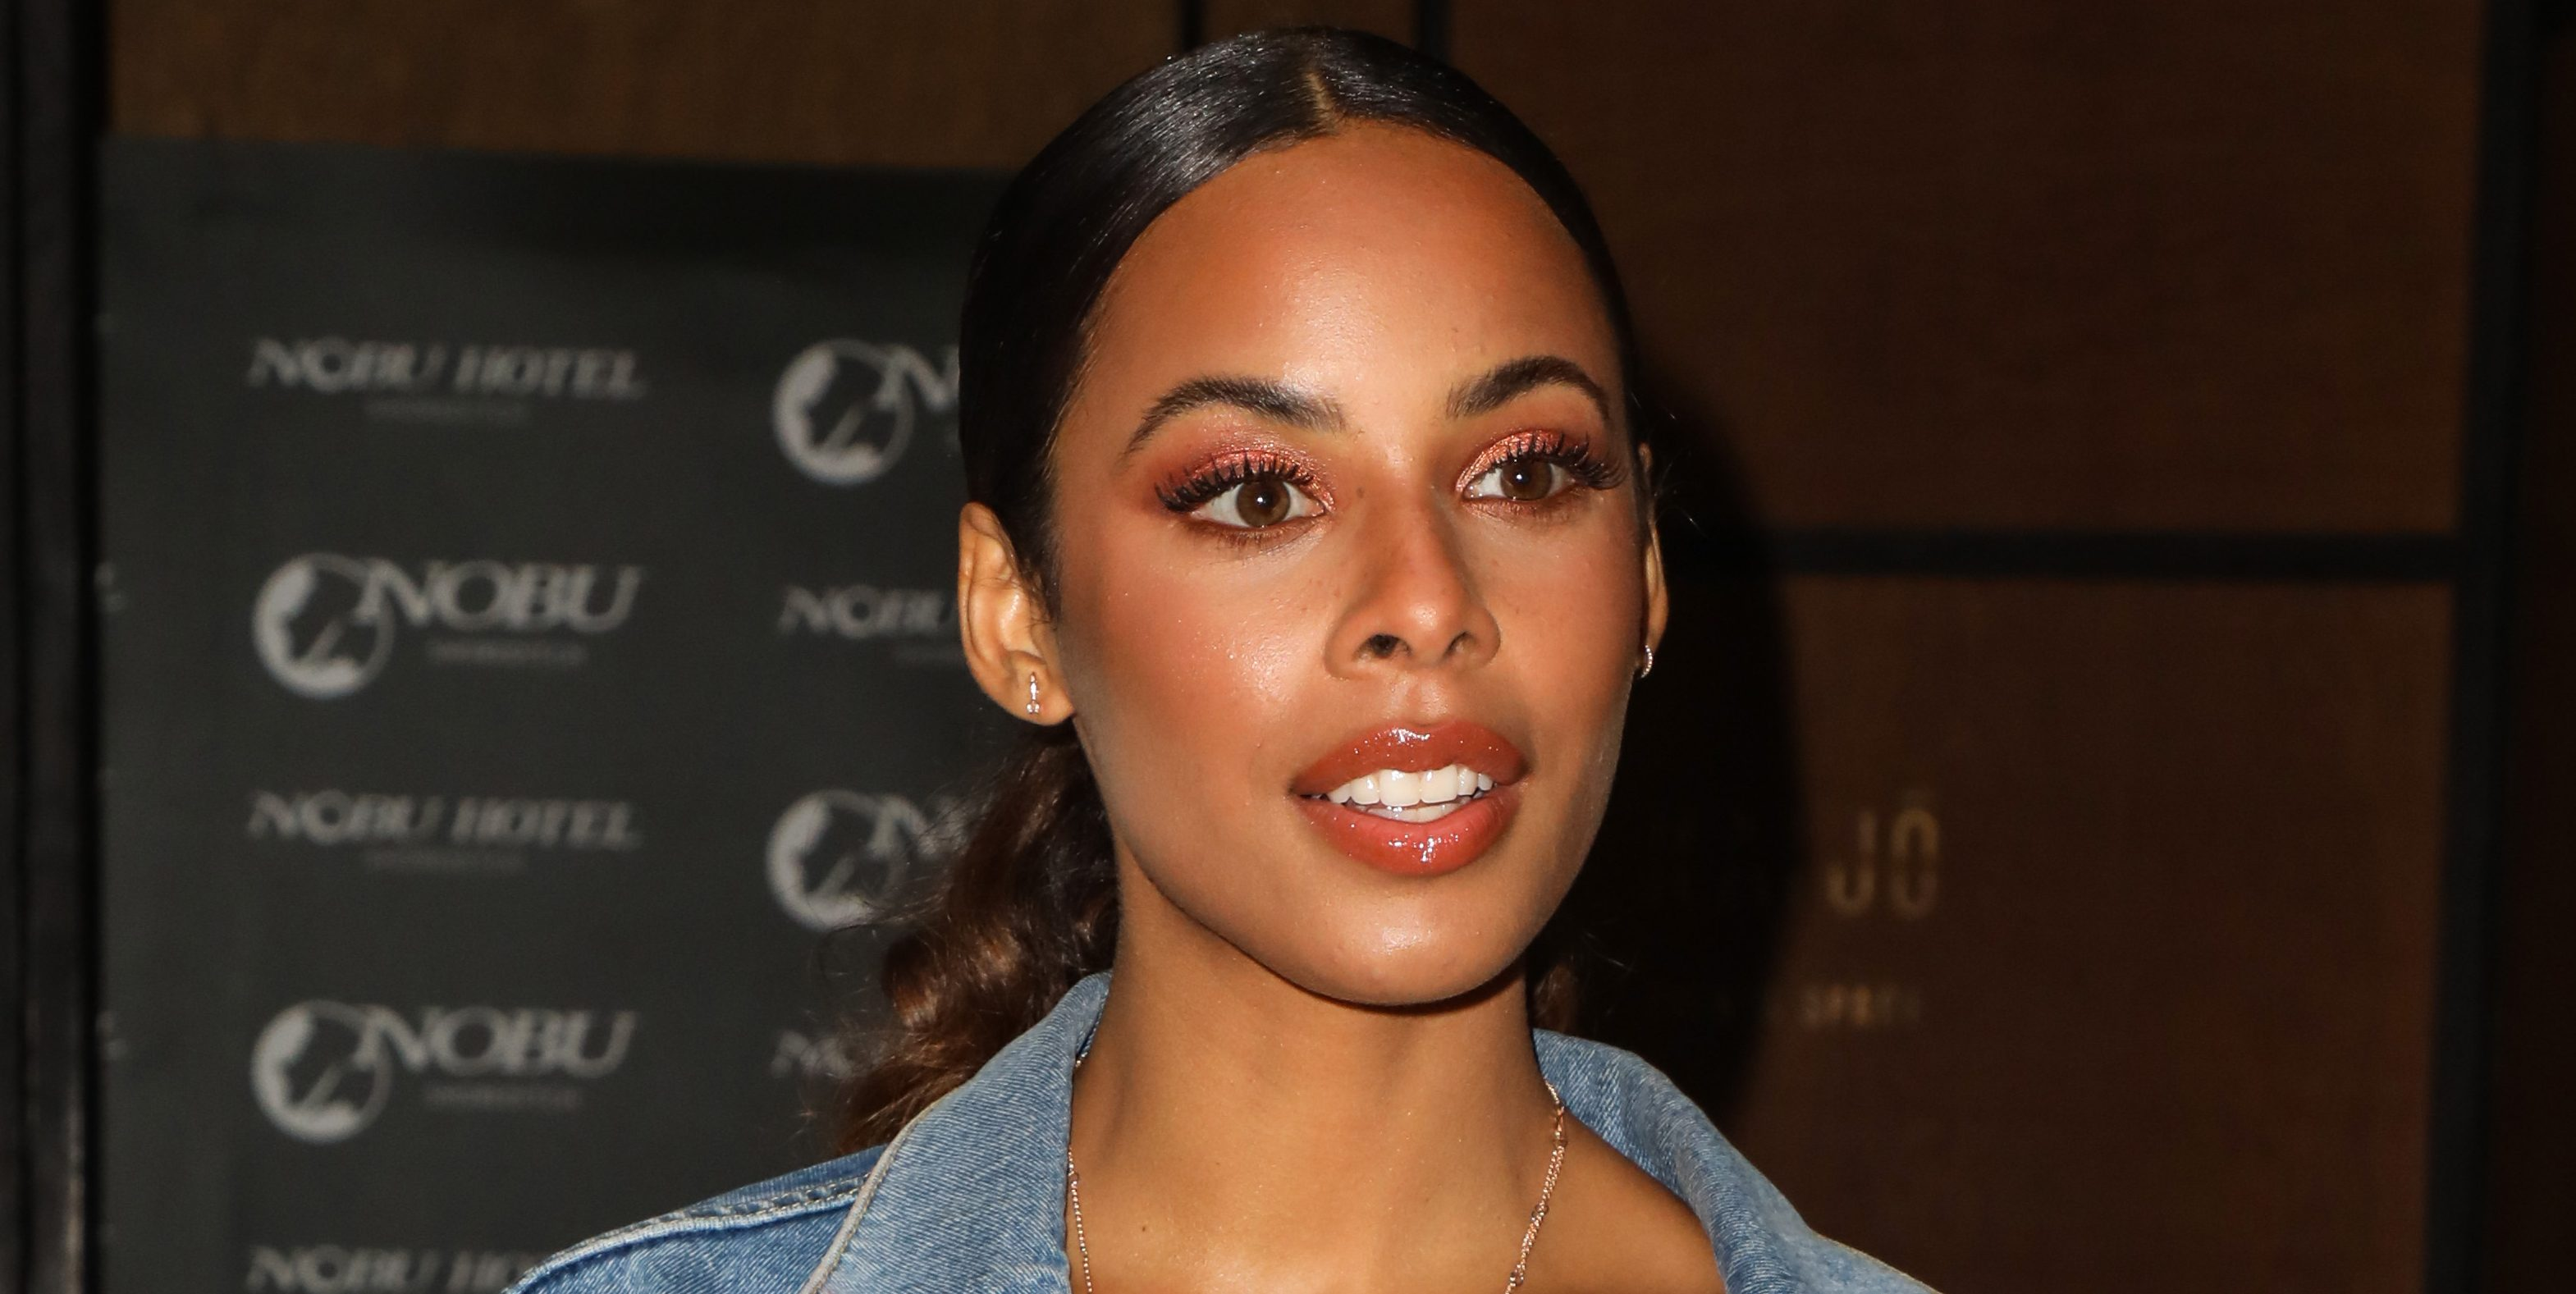 Rochelle Humes shares make-up-free selfie after sleepless night with her youngest daughter